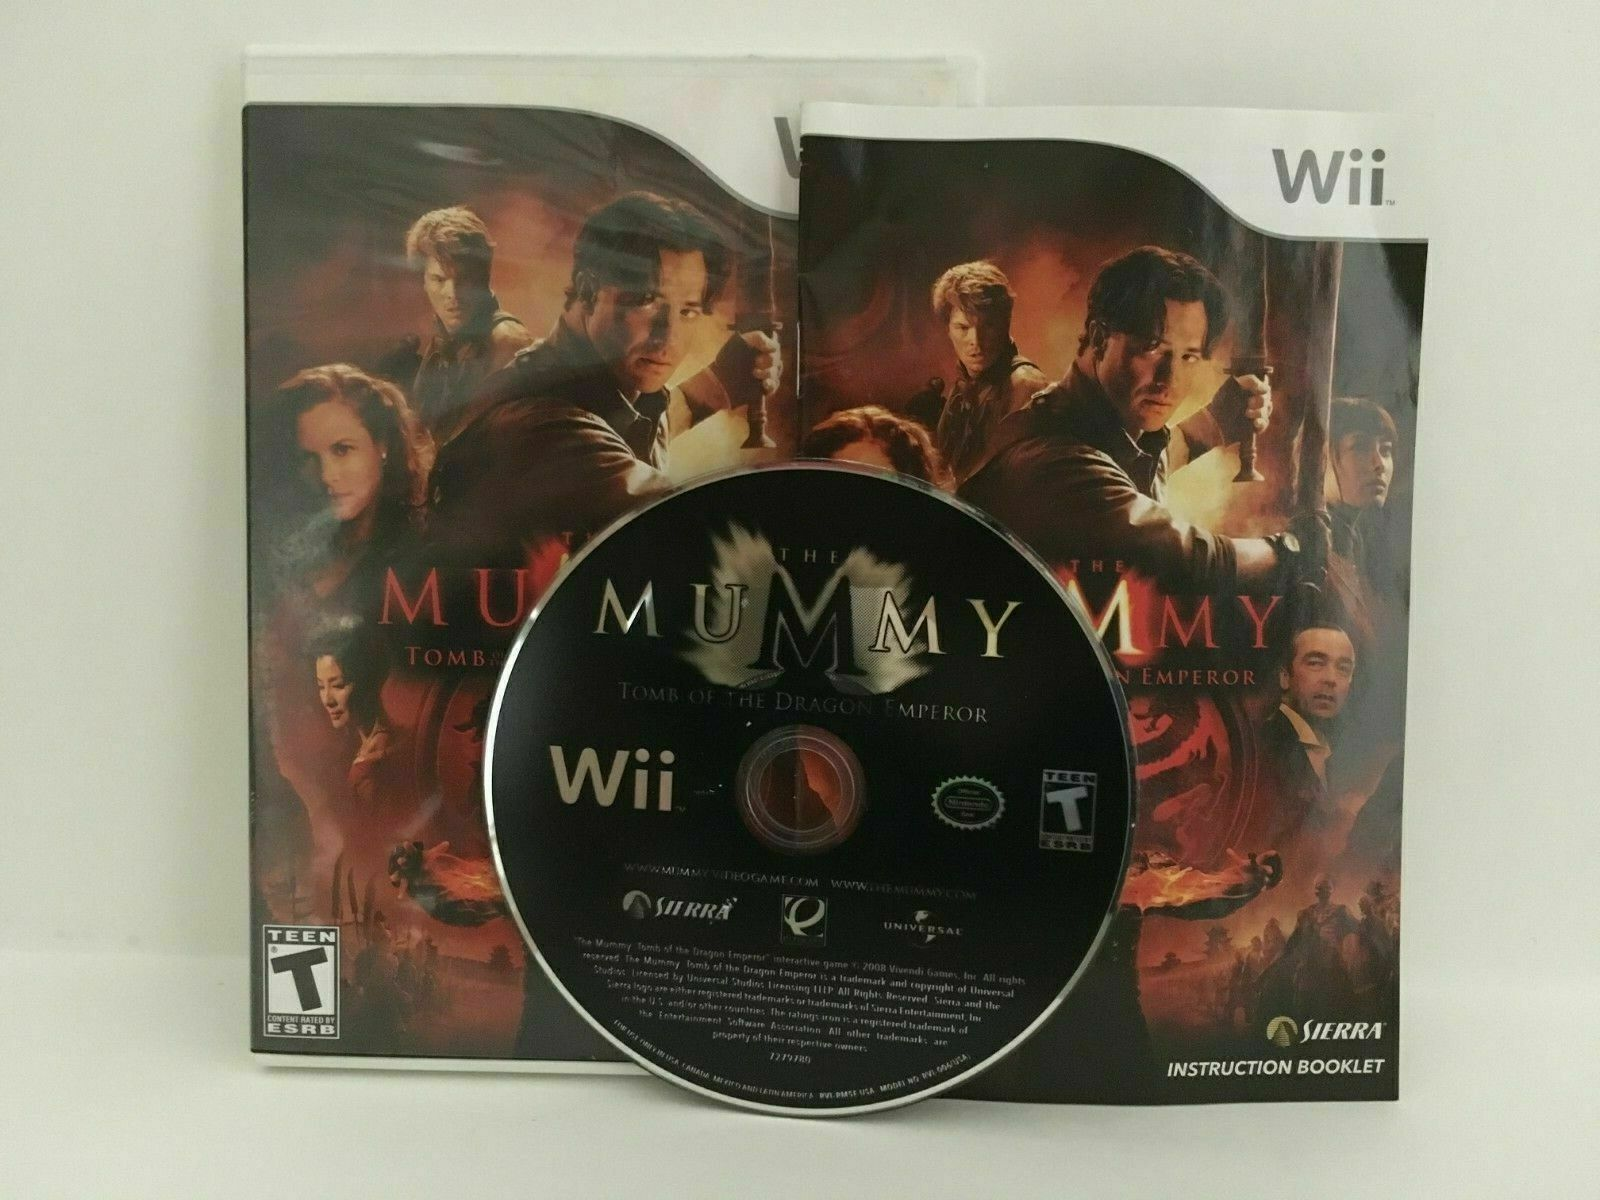 Primary image for Mummy: Tomb of the Dragon Emperor (Nintendo Wii, 2008)